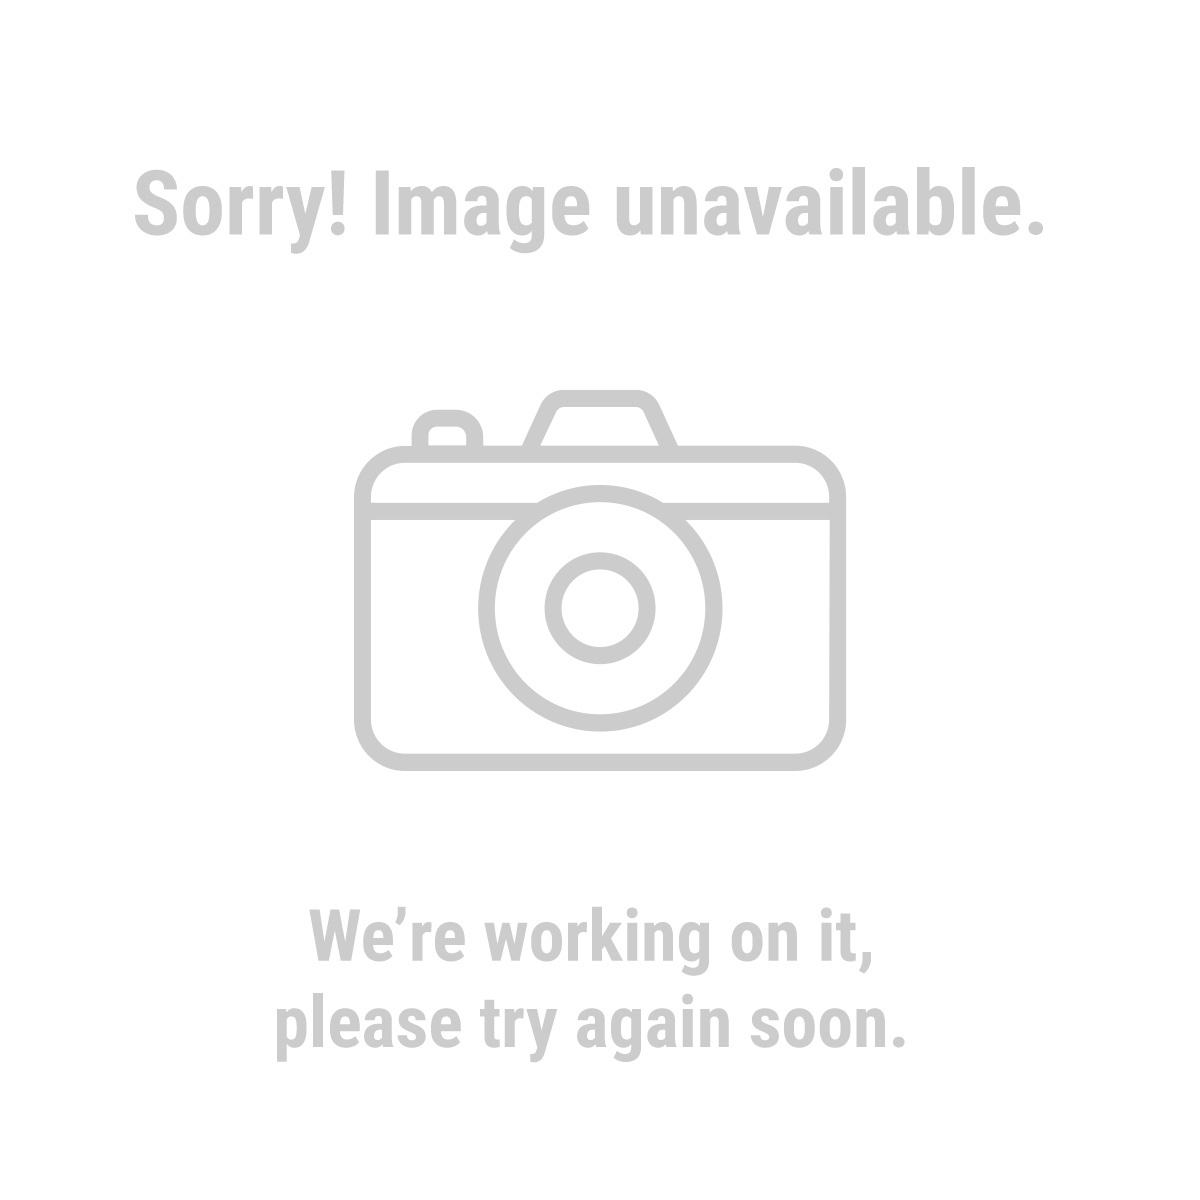 Floor Jacks Save On Automotive Floor Jacks At Harbor Freight